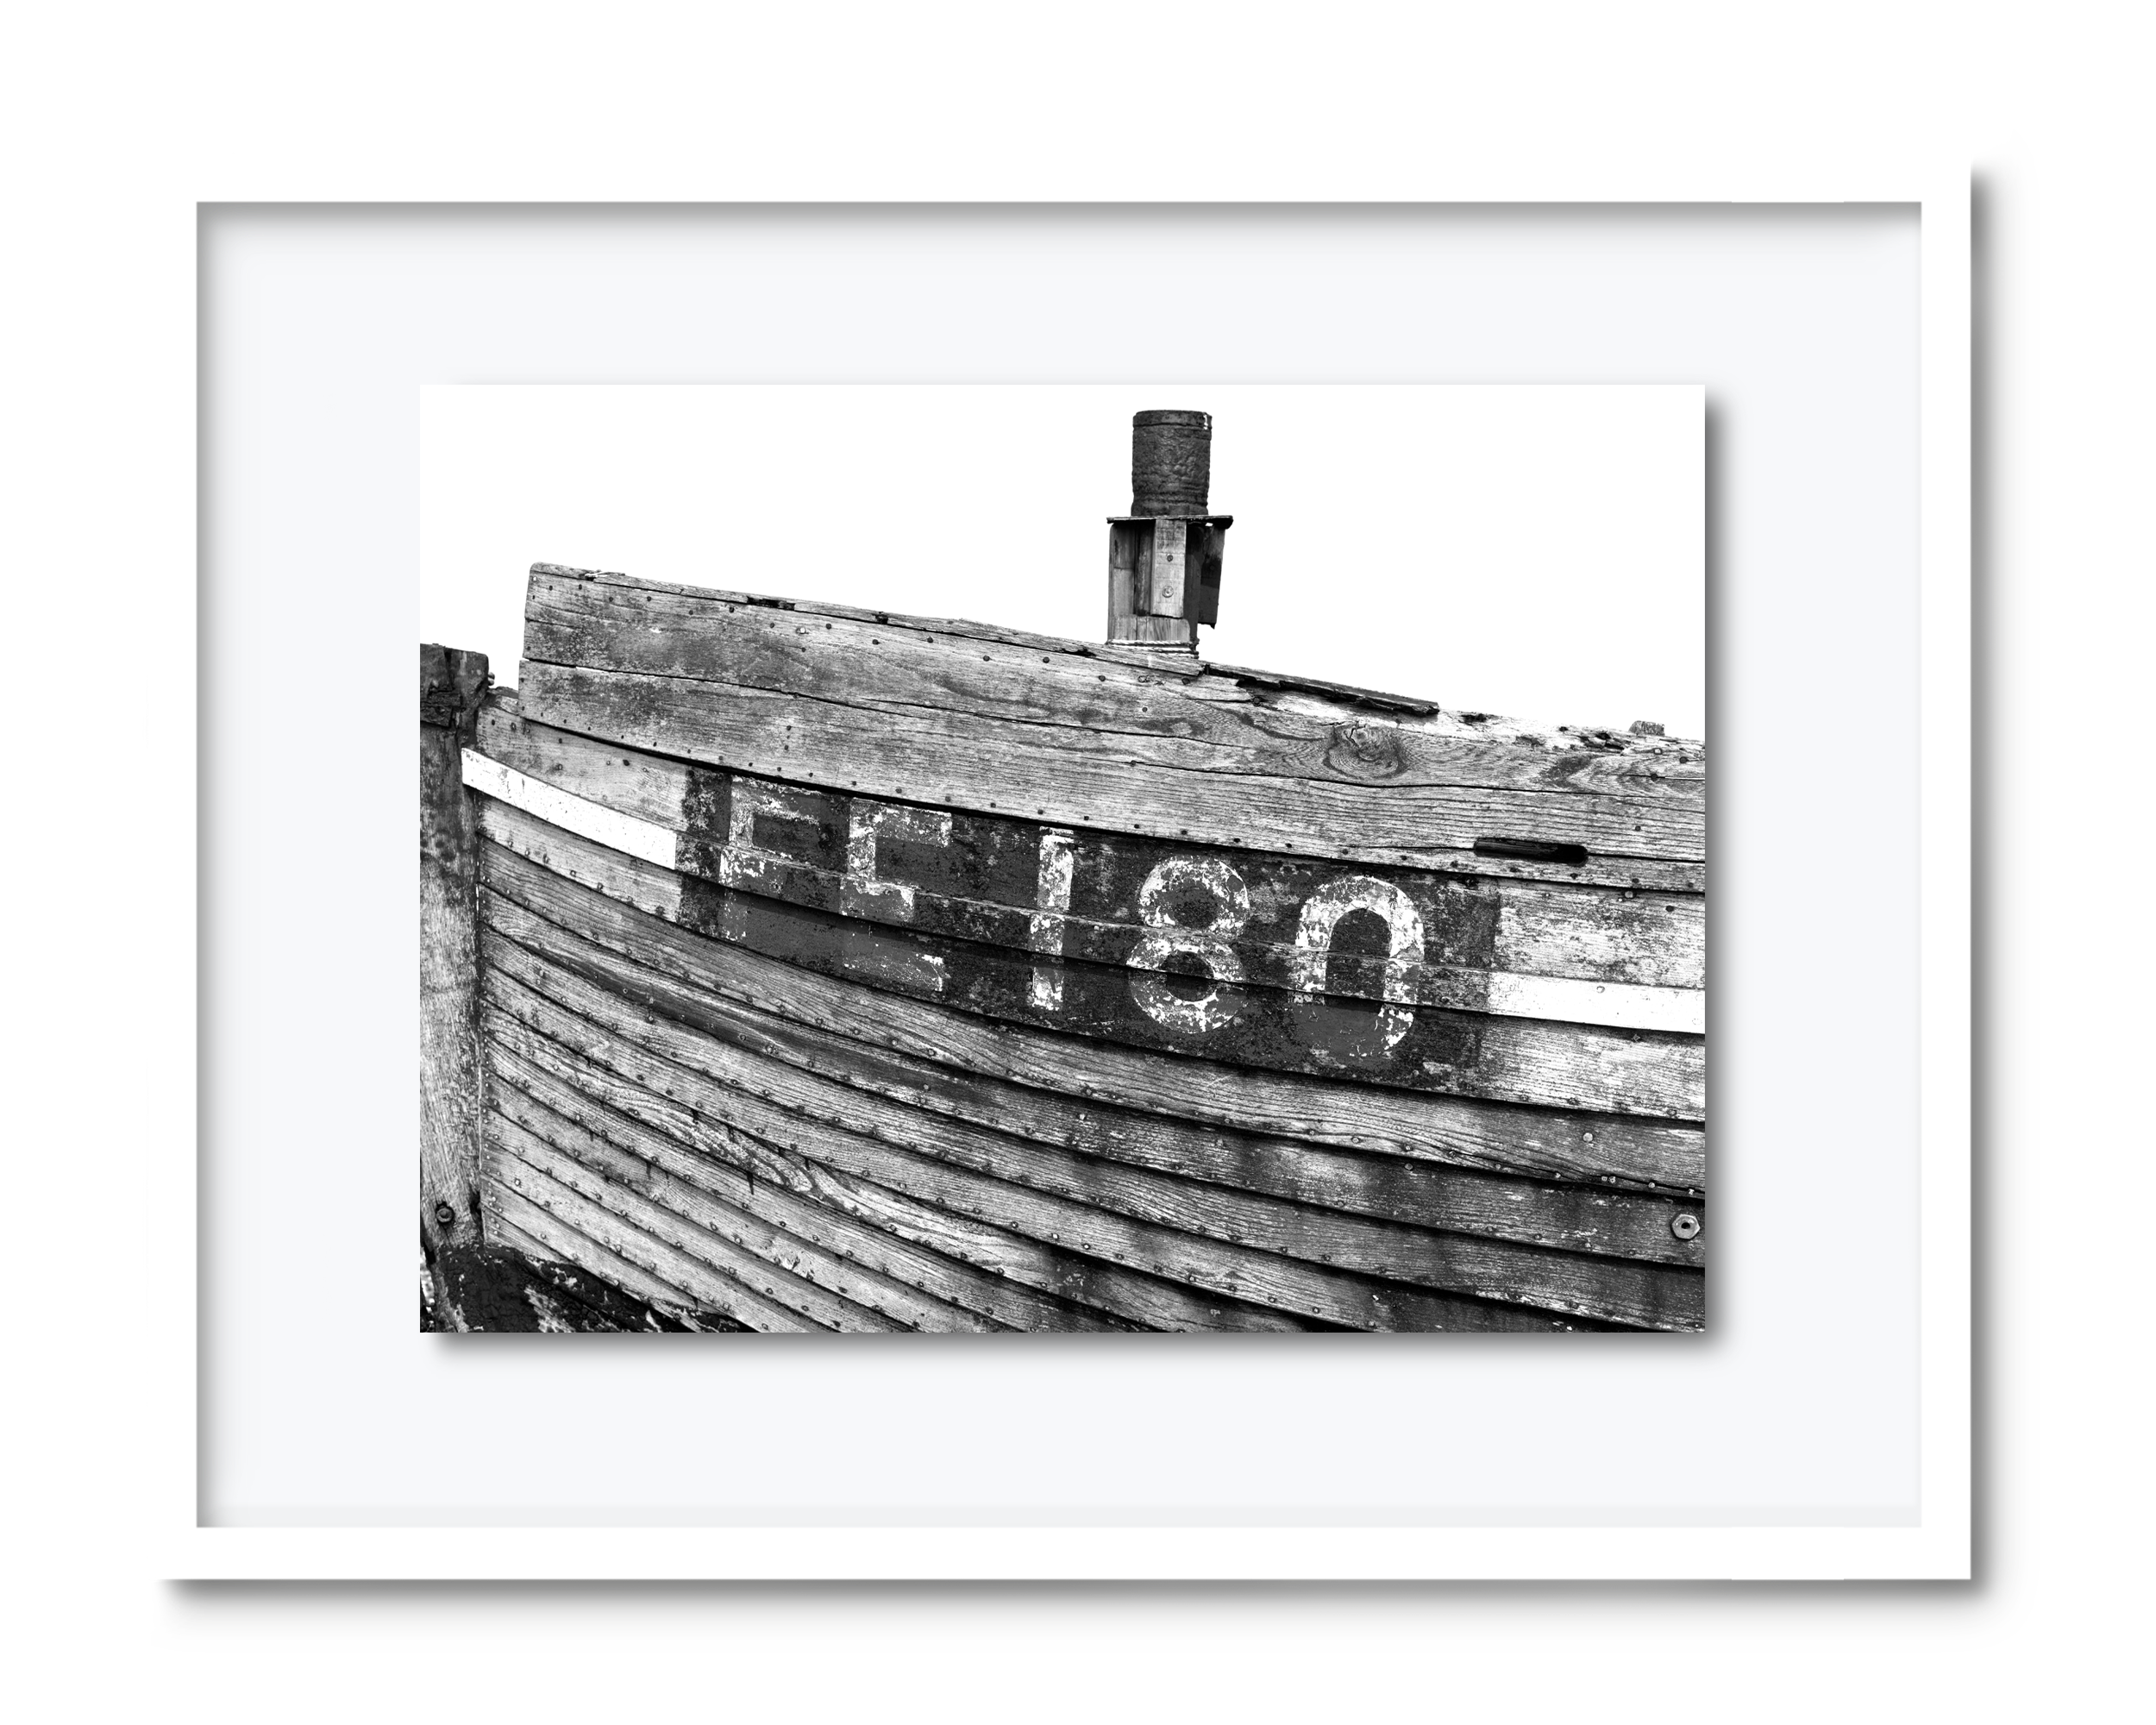 22.david-pearce-old-fishing-boat3.png